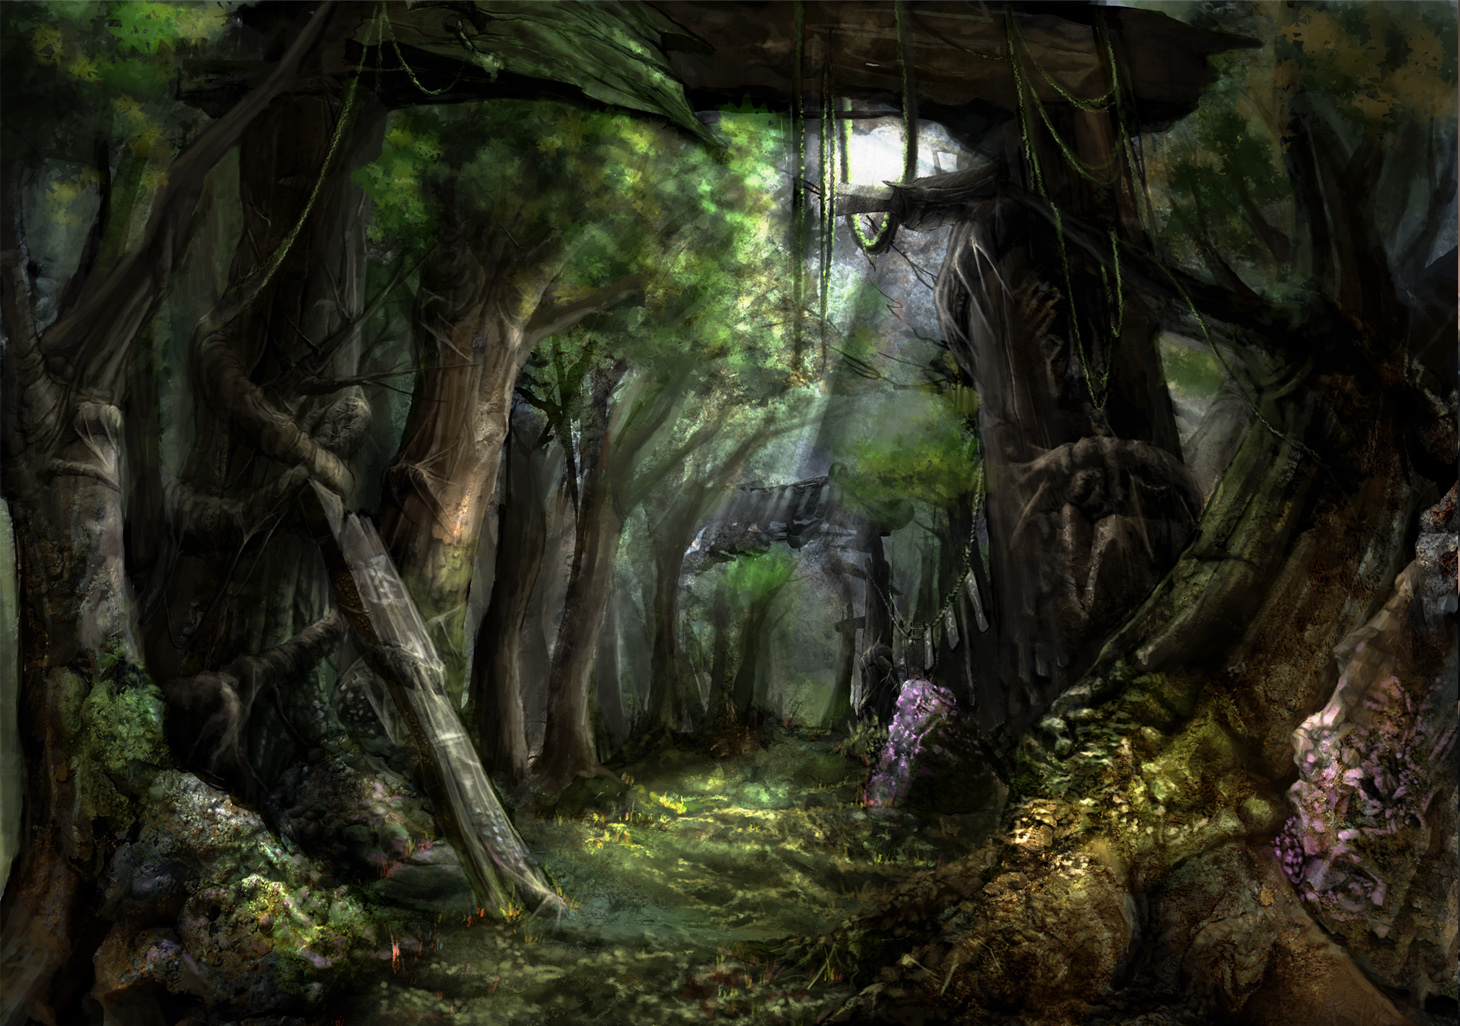 1460x1026_1382_Forest_of_KOG-fantasy_forest_environment_picture_image_digital_art.jpg